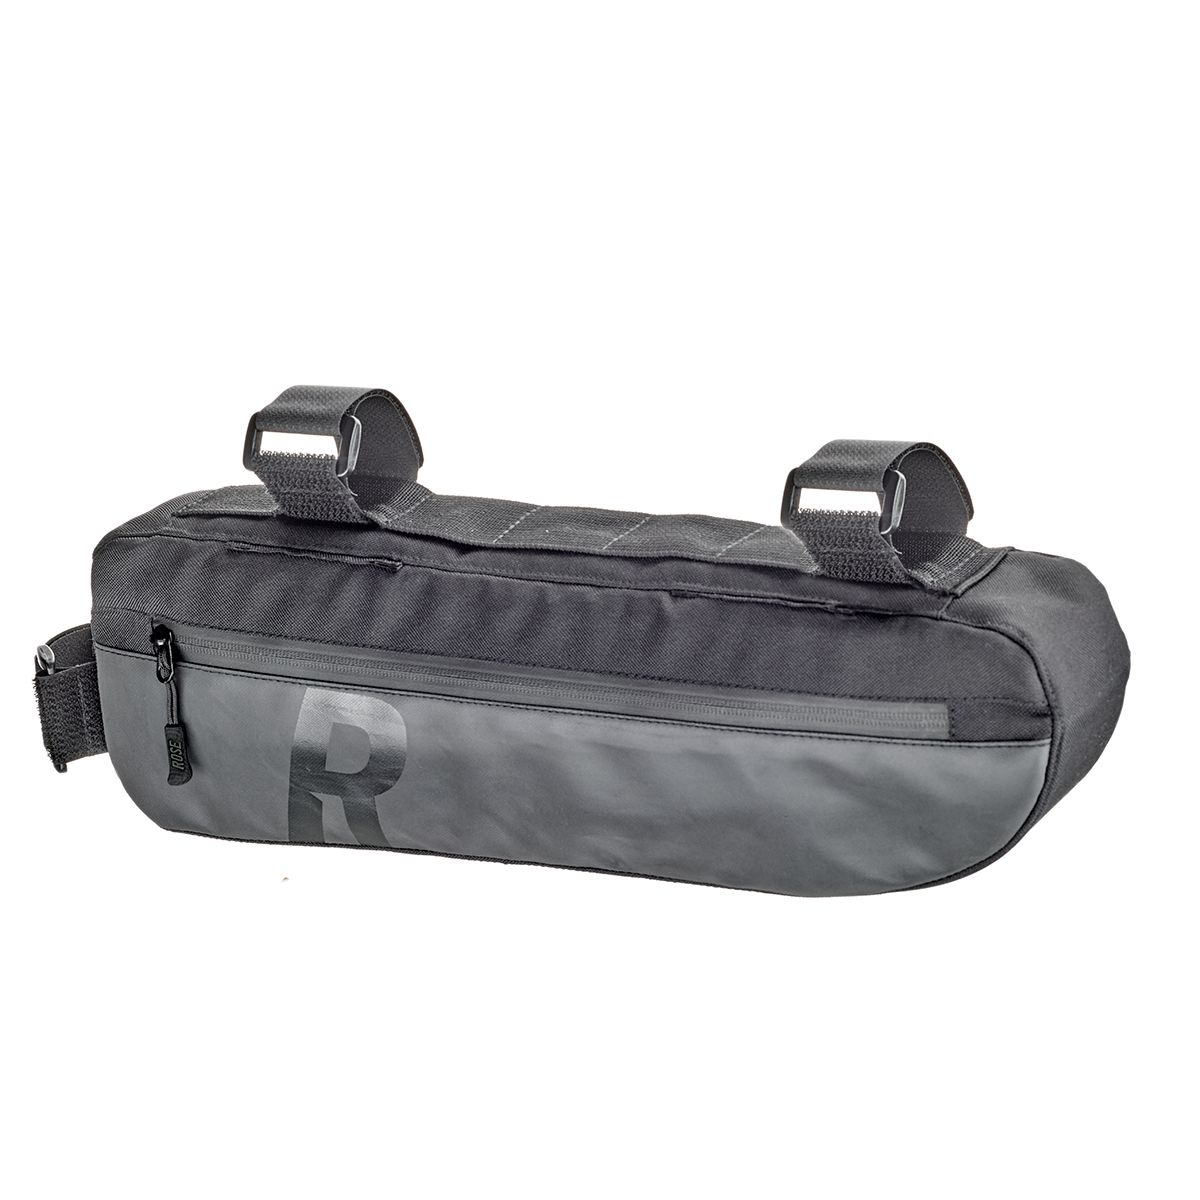 ROSE TRAVEL REFLECT frame bag | Rygsæk og rejsetasker